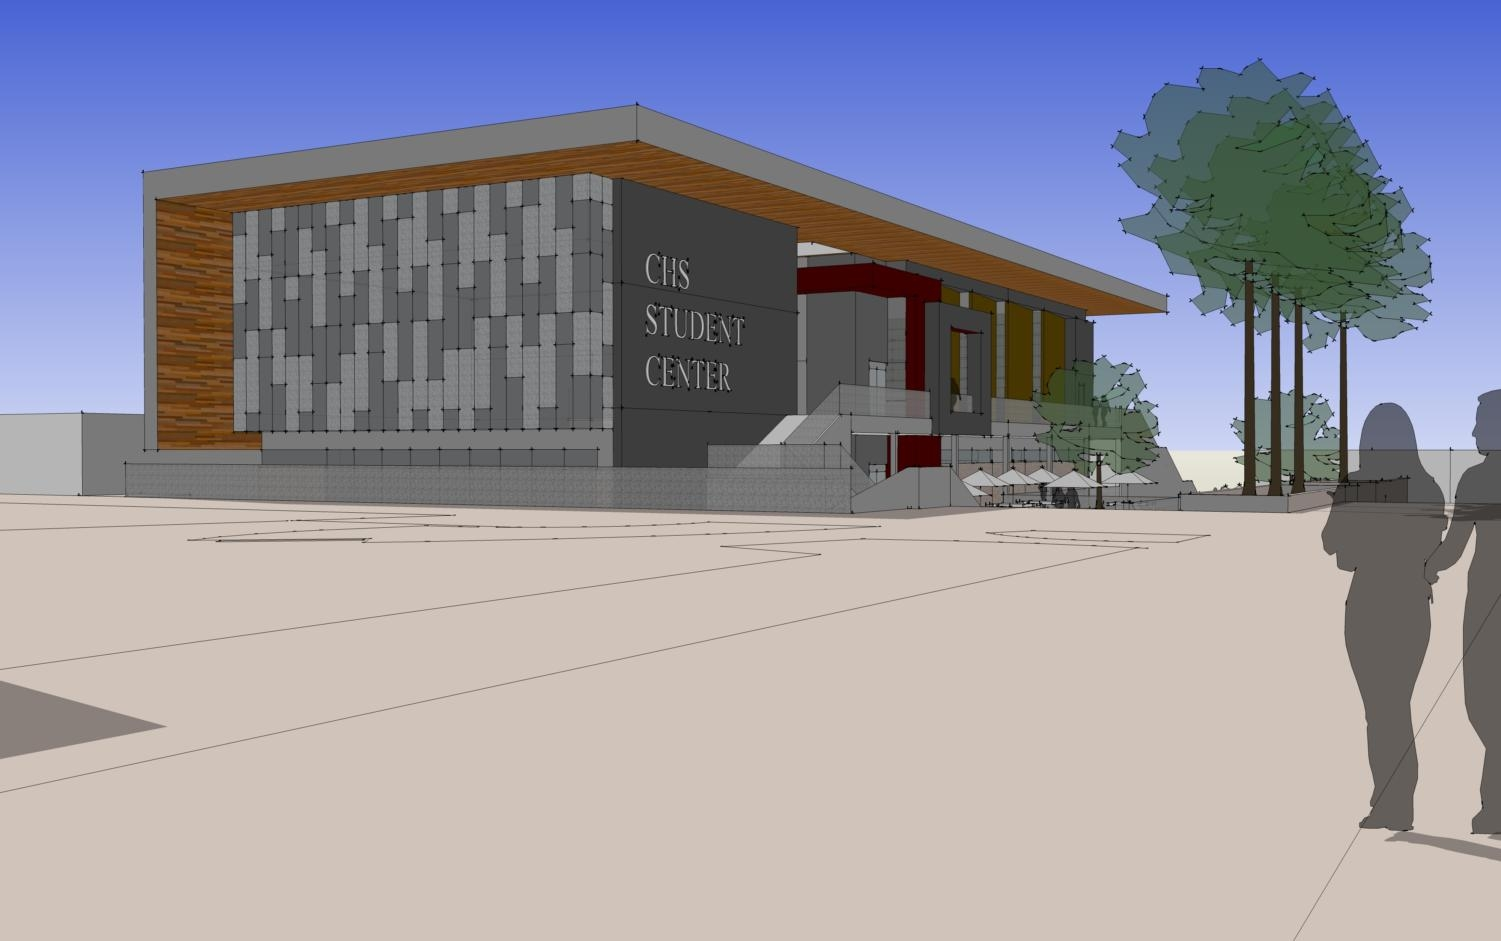 Visions of the new Student Center (Northwest Ground View, above).